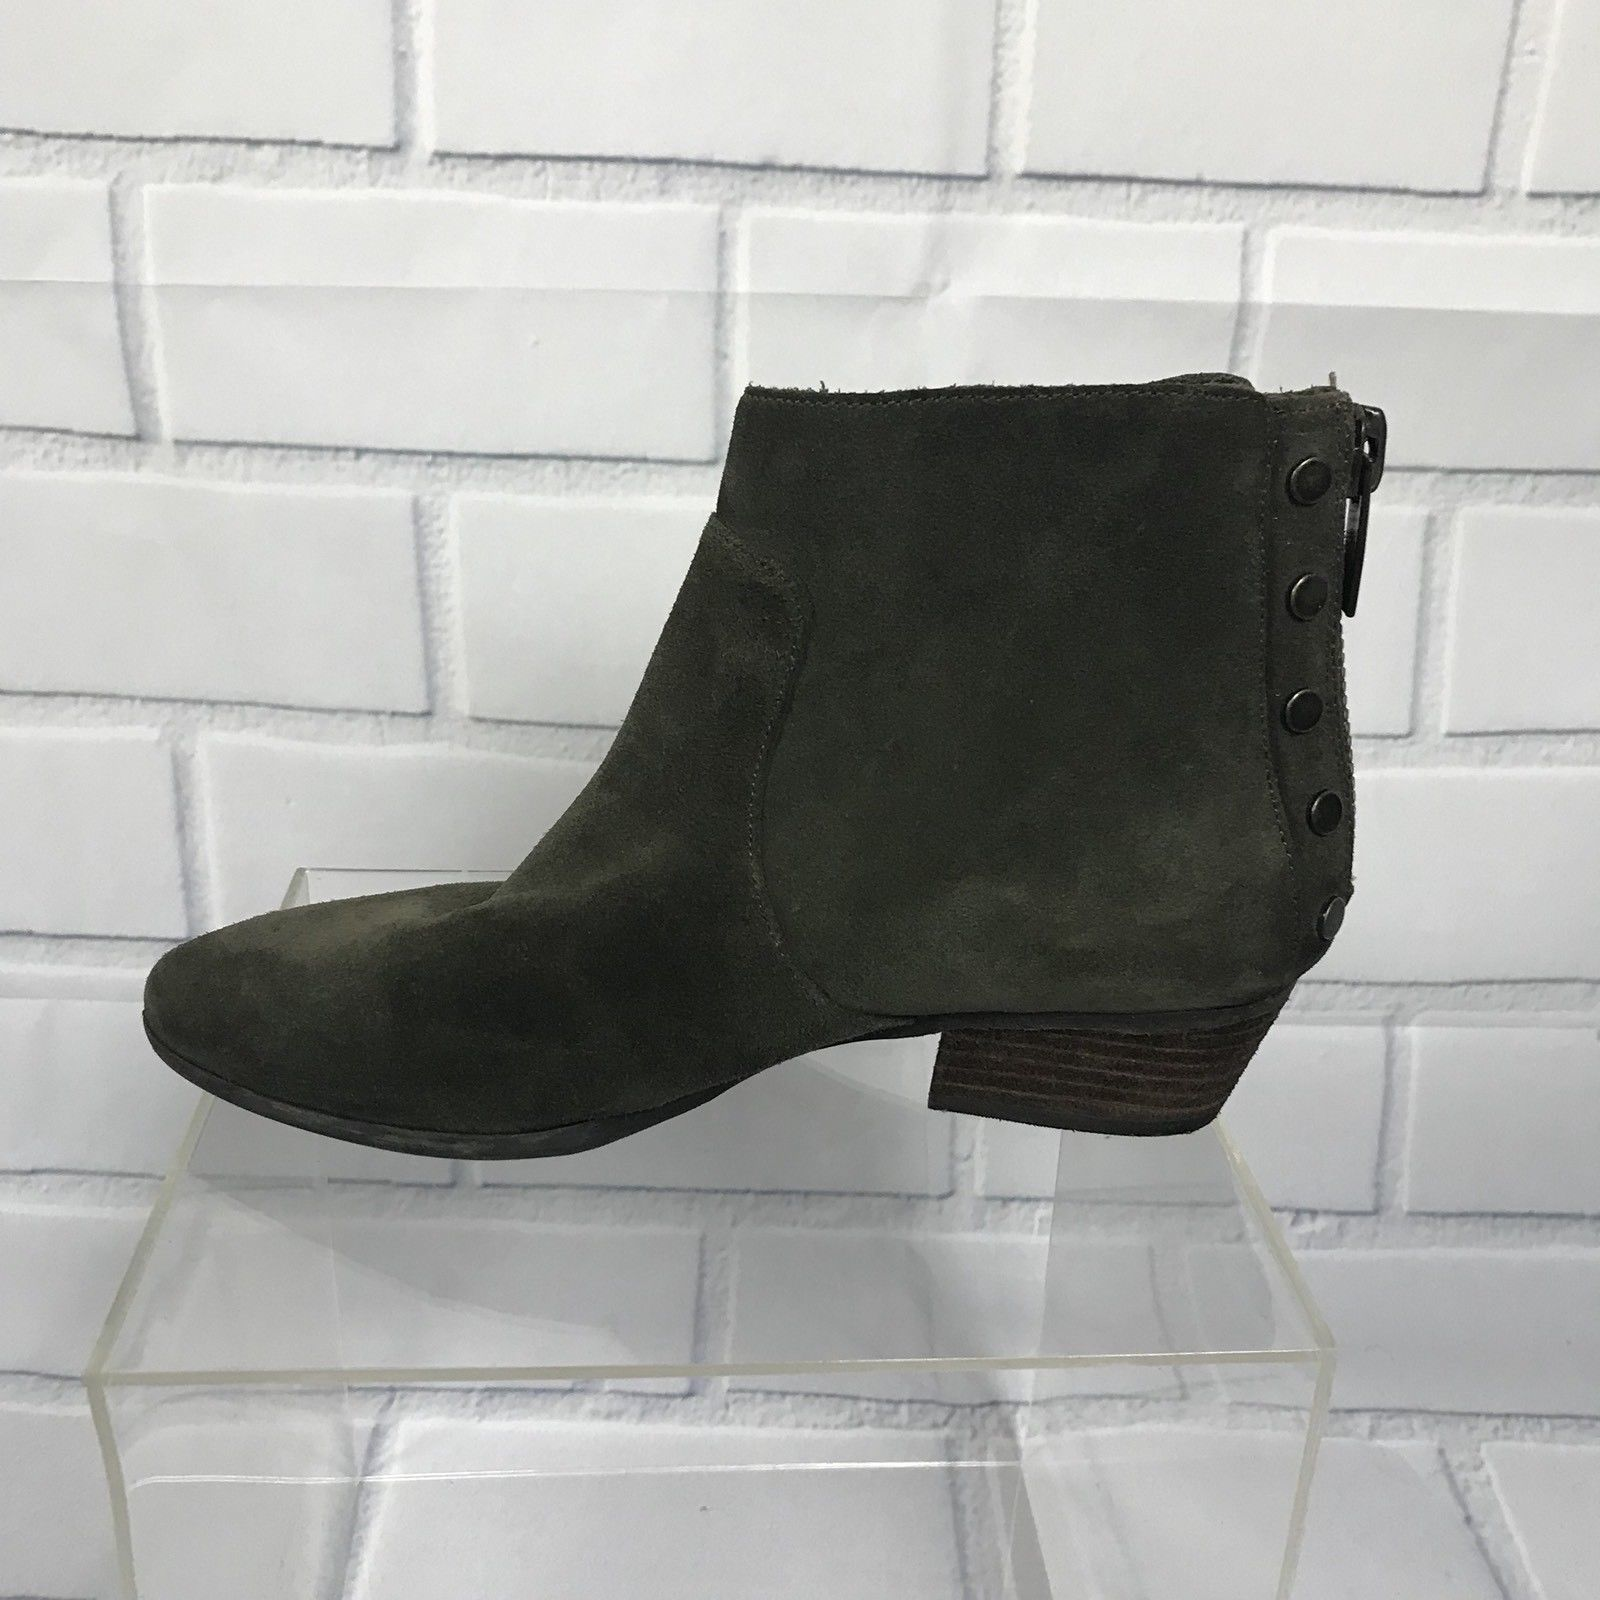 90c3e2e8eb14d Vince Camuto Cinza Women Olive Green Studded Zippered Suede Ankle Boots Sz  7.5